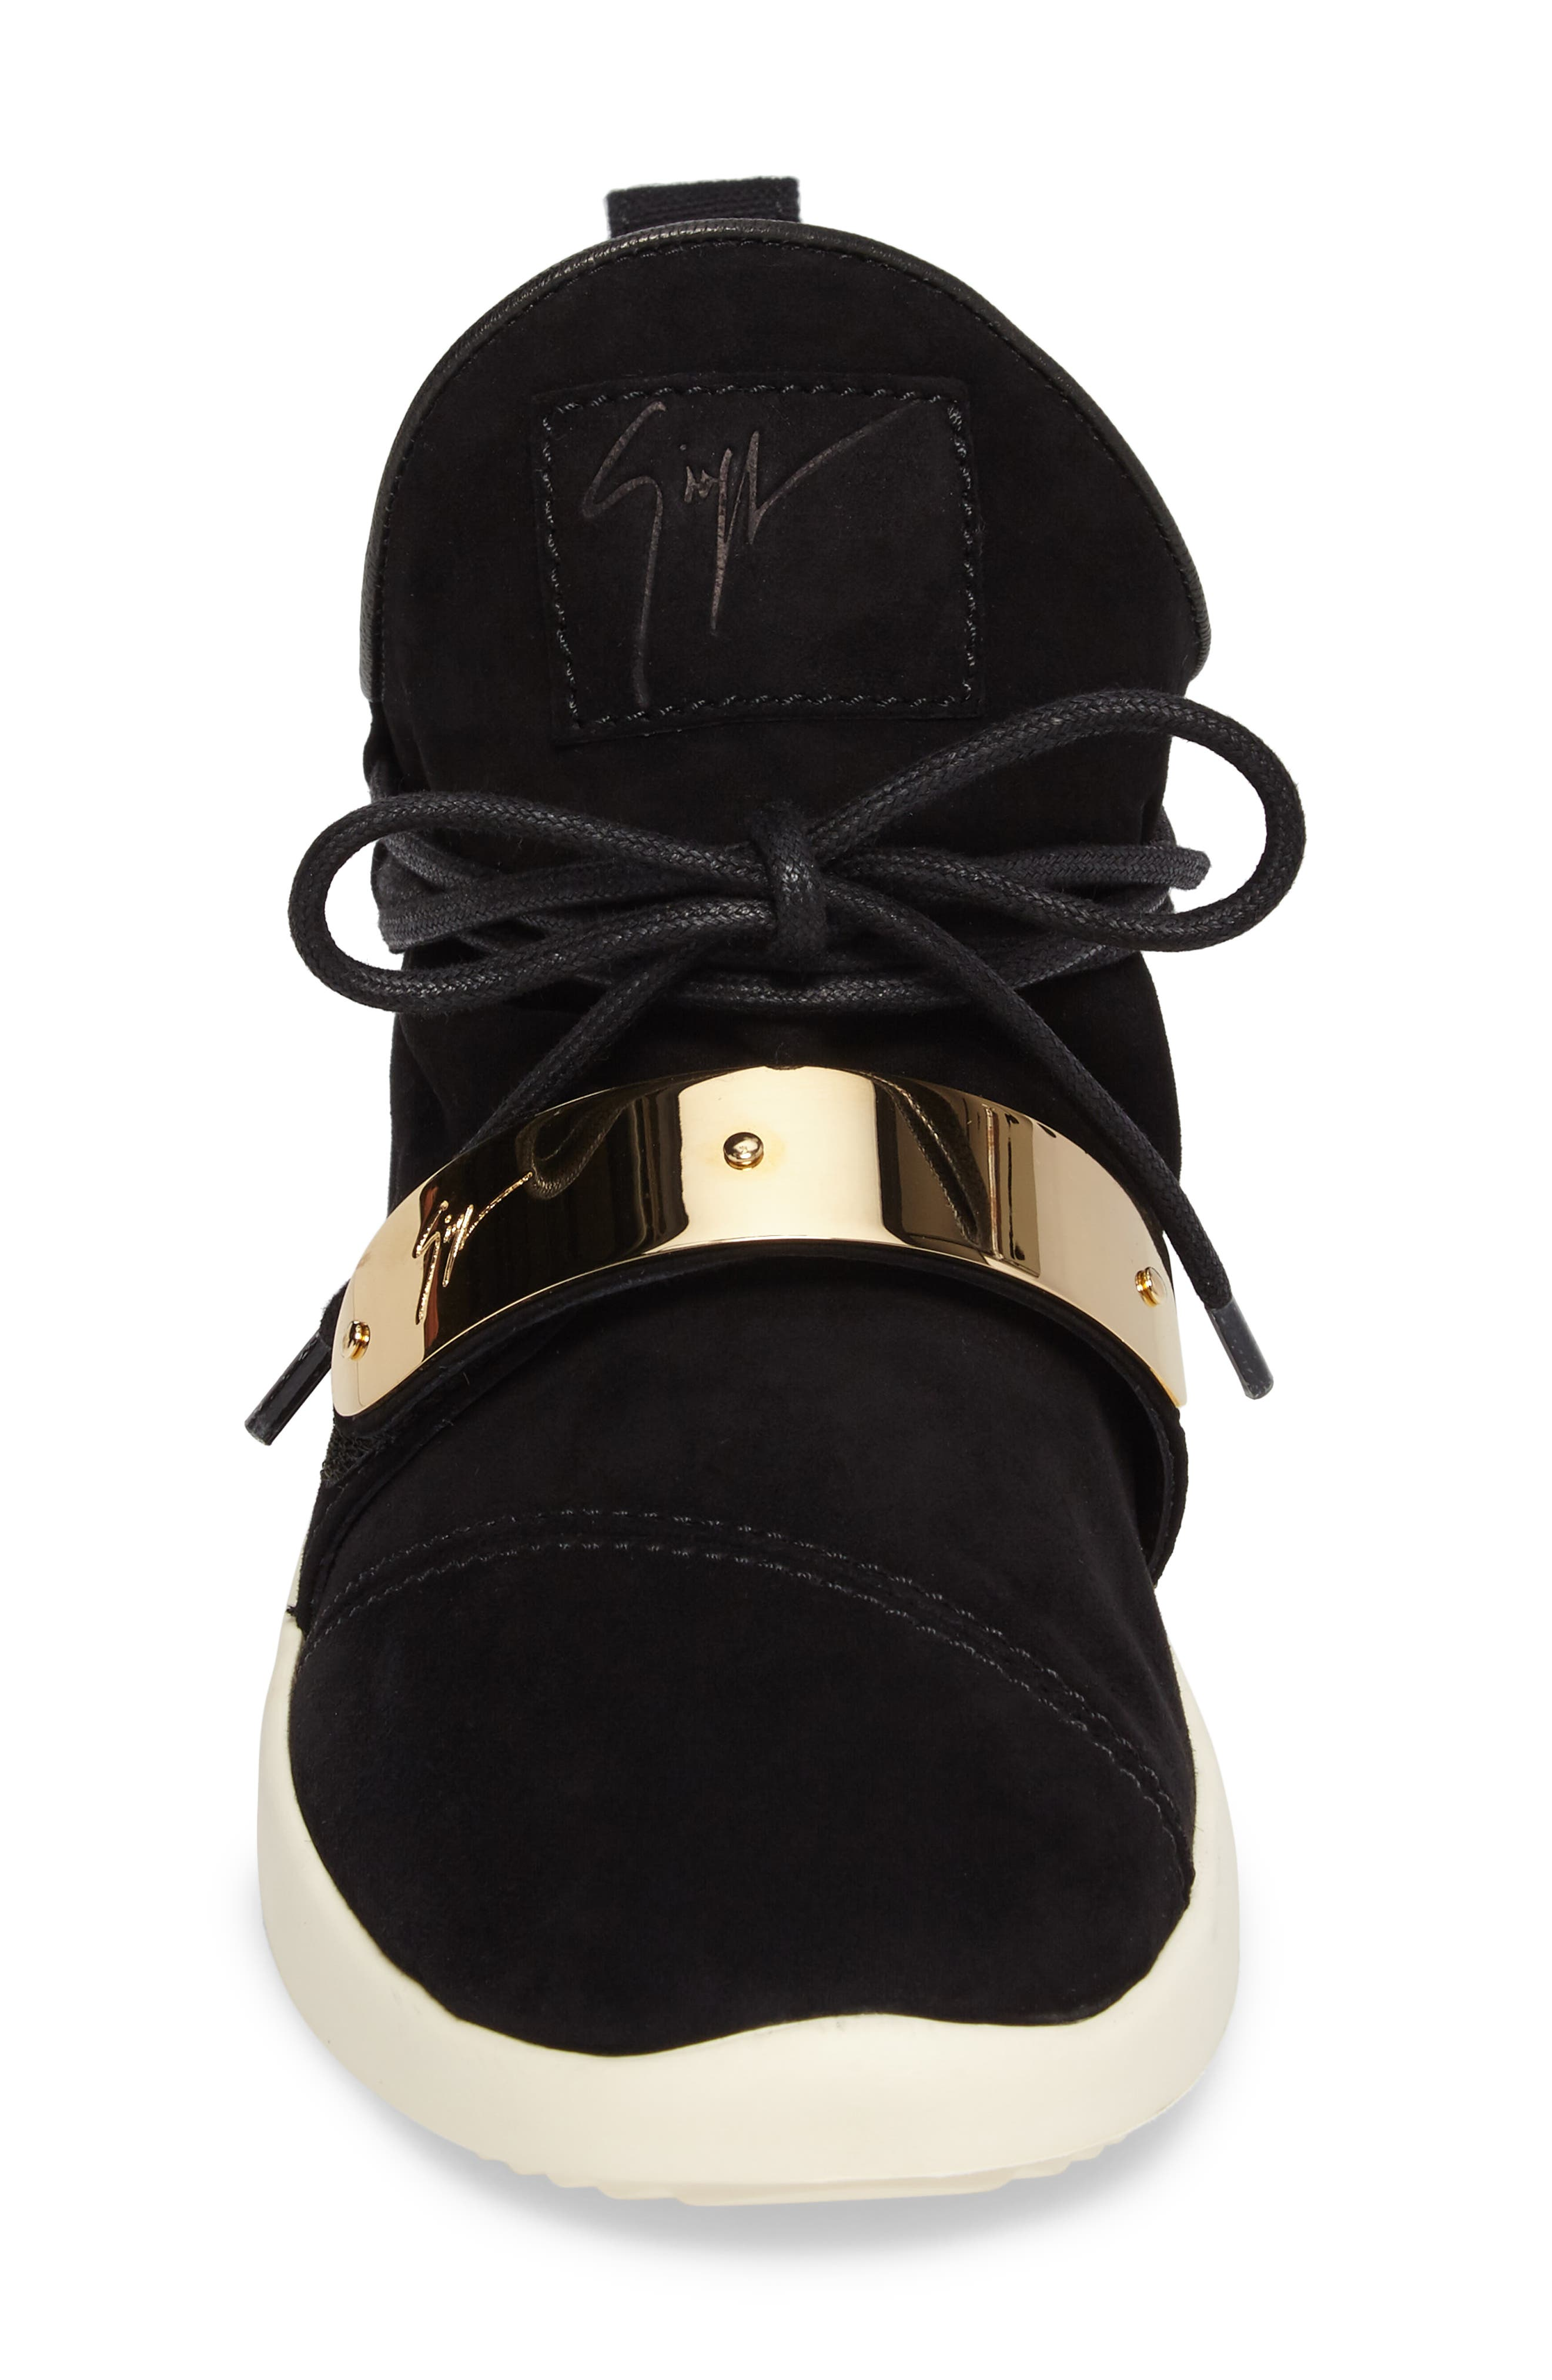 Gold Band Sneaker,                             Alternate thumbnail 4, color,                             001